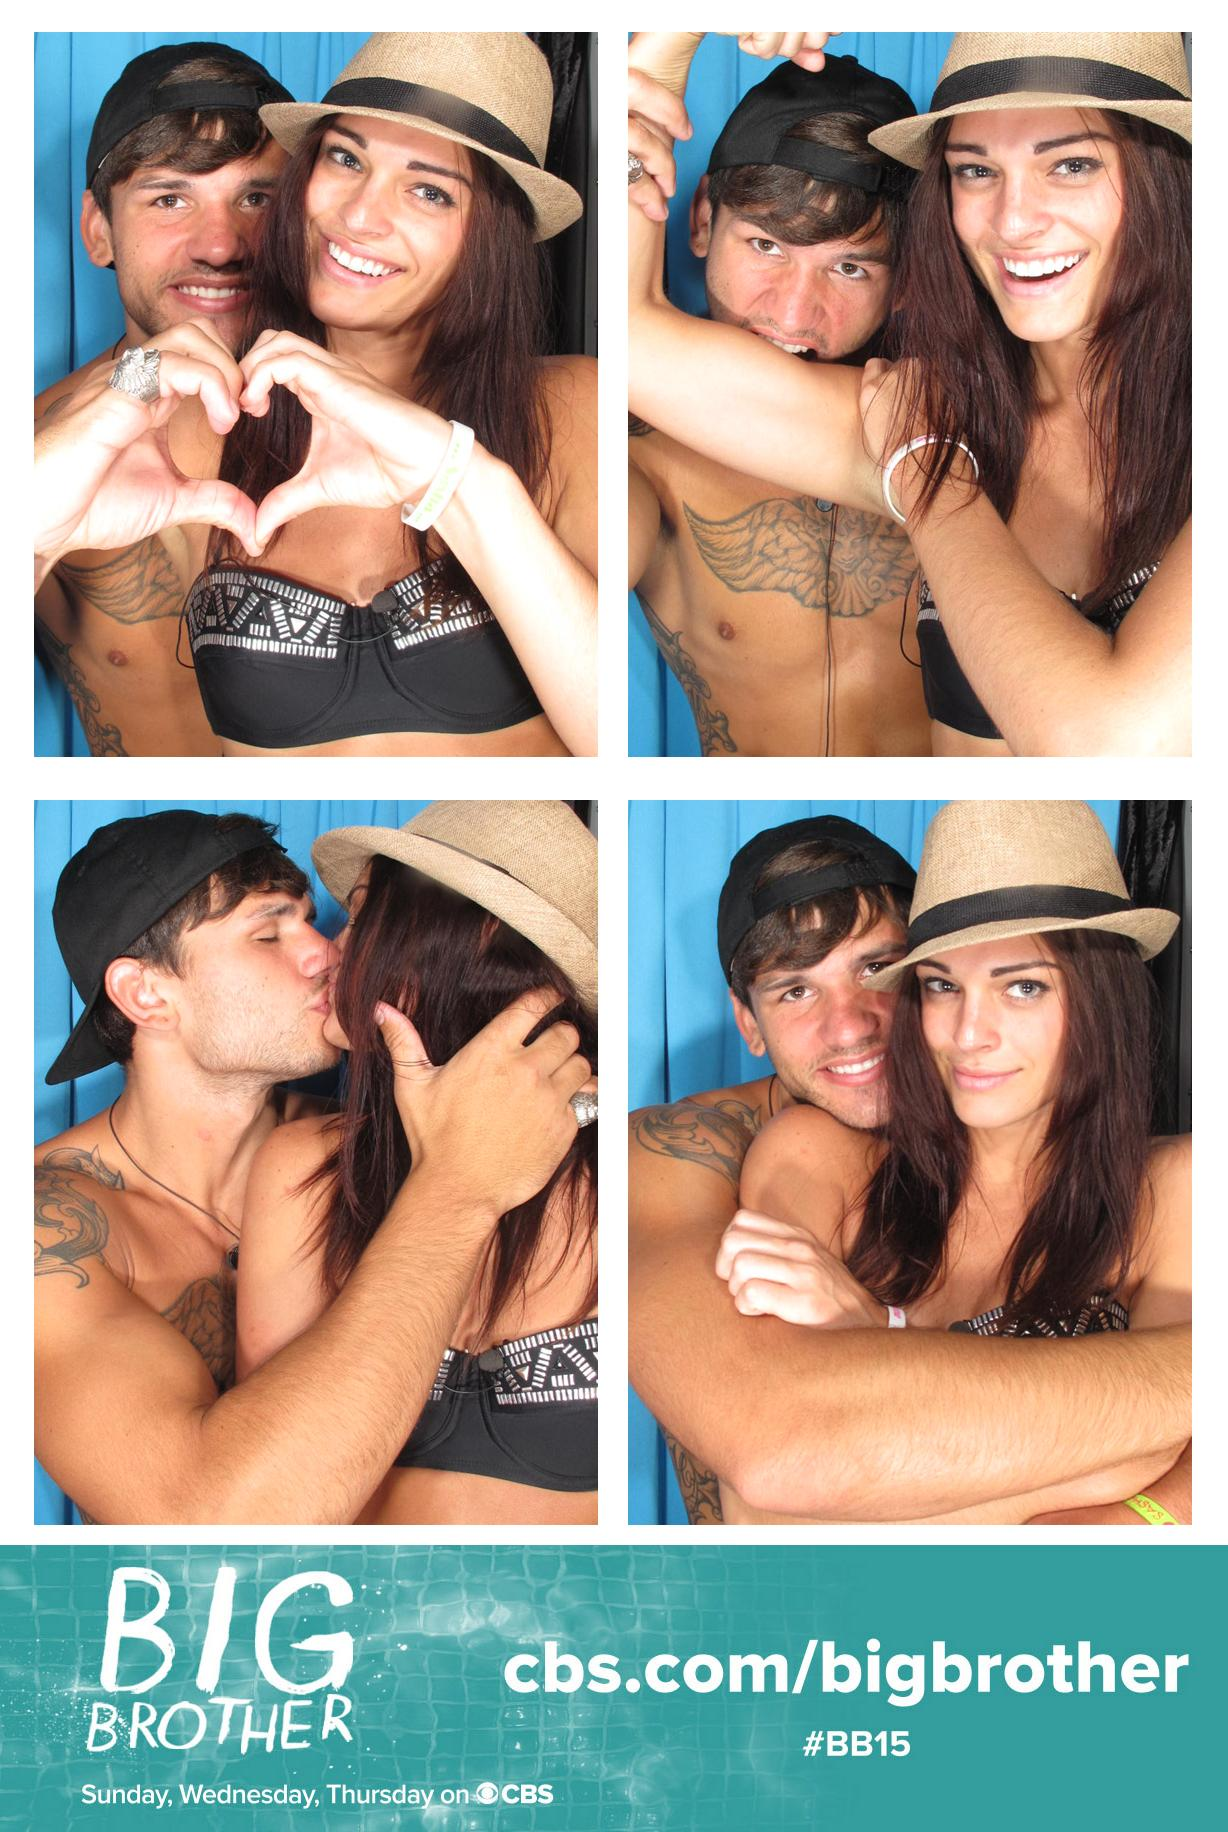 Jeremy and Kaitlin